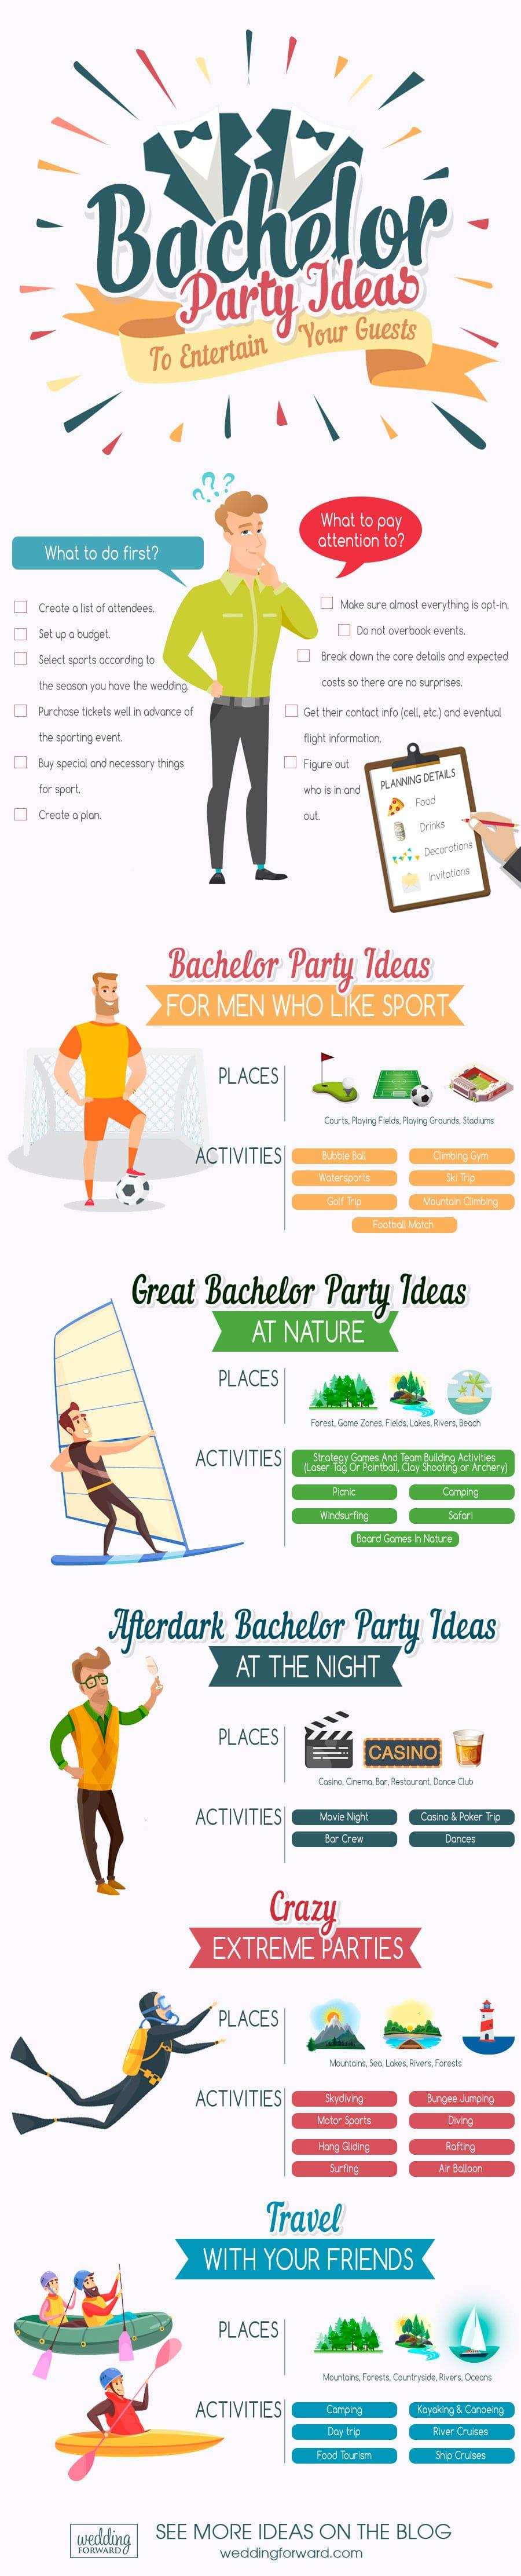 bachelor-party-ideas-for-men-infographic